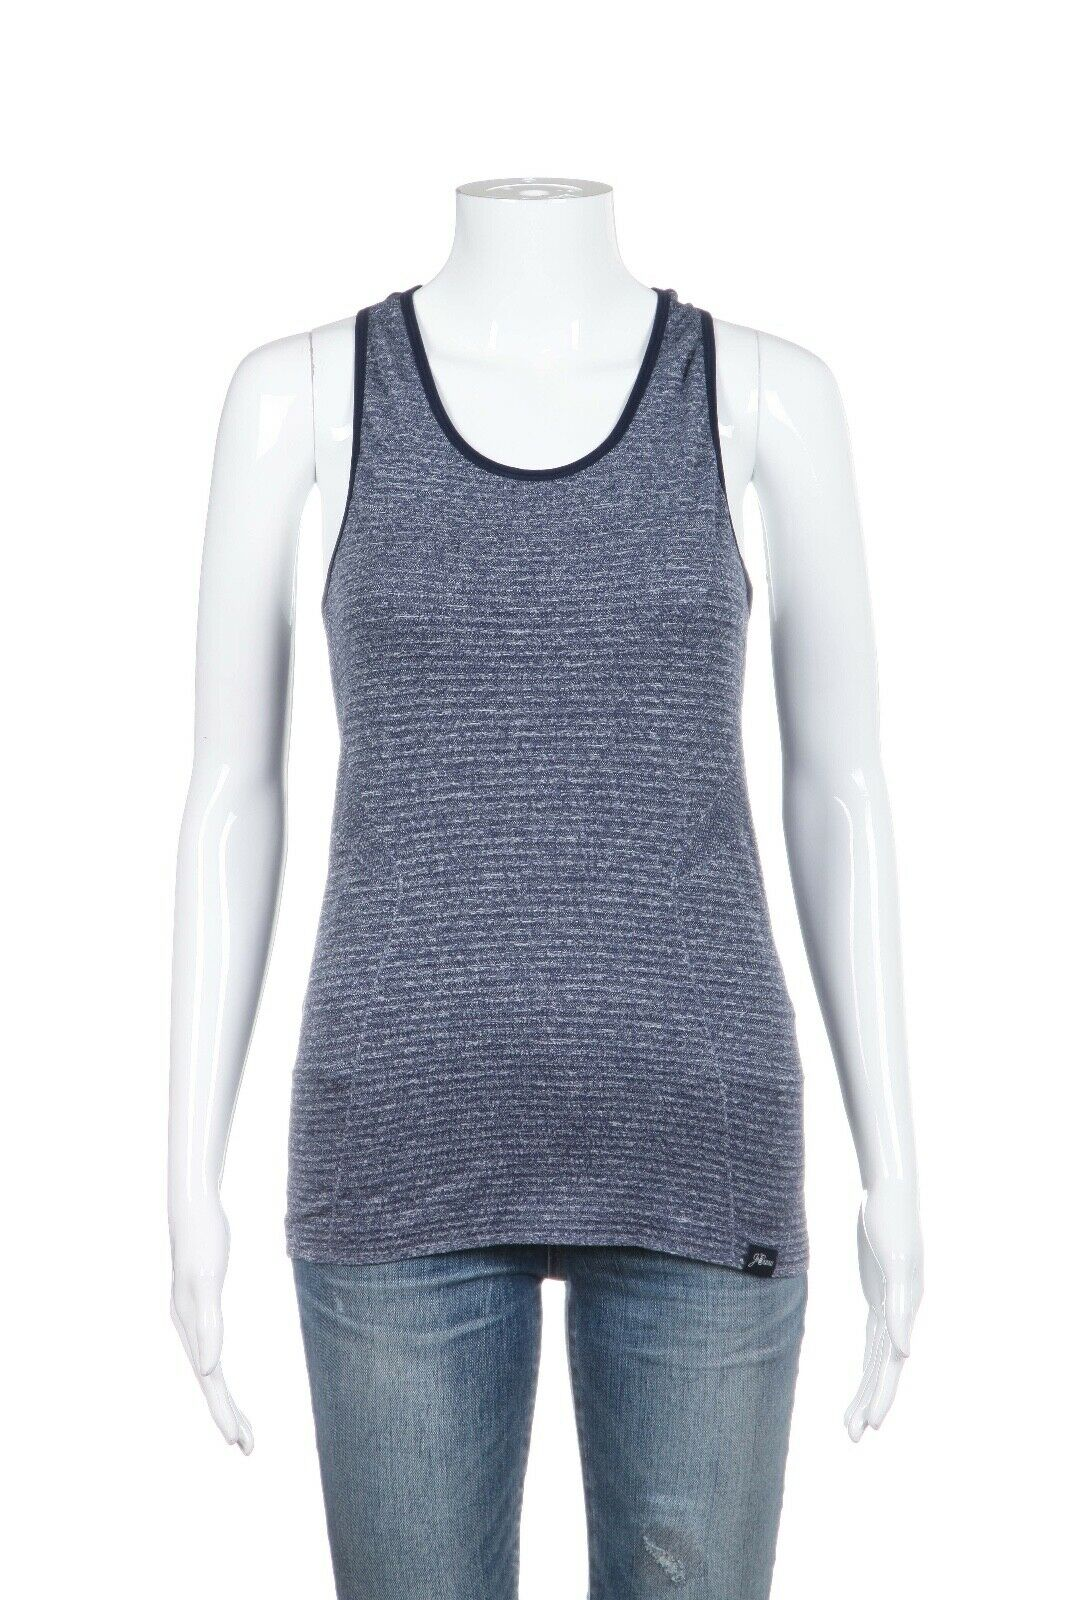 J.CREW x NEW BALANCE Athletic Tank Top Size XS